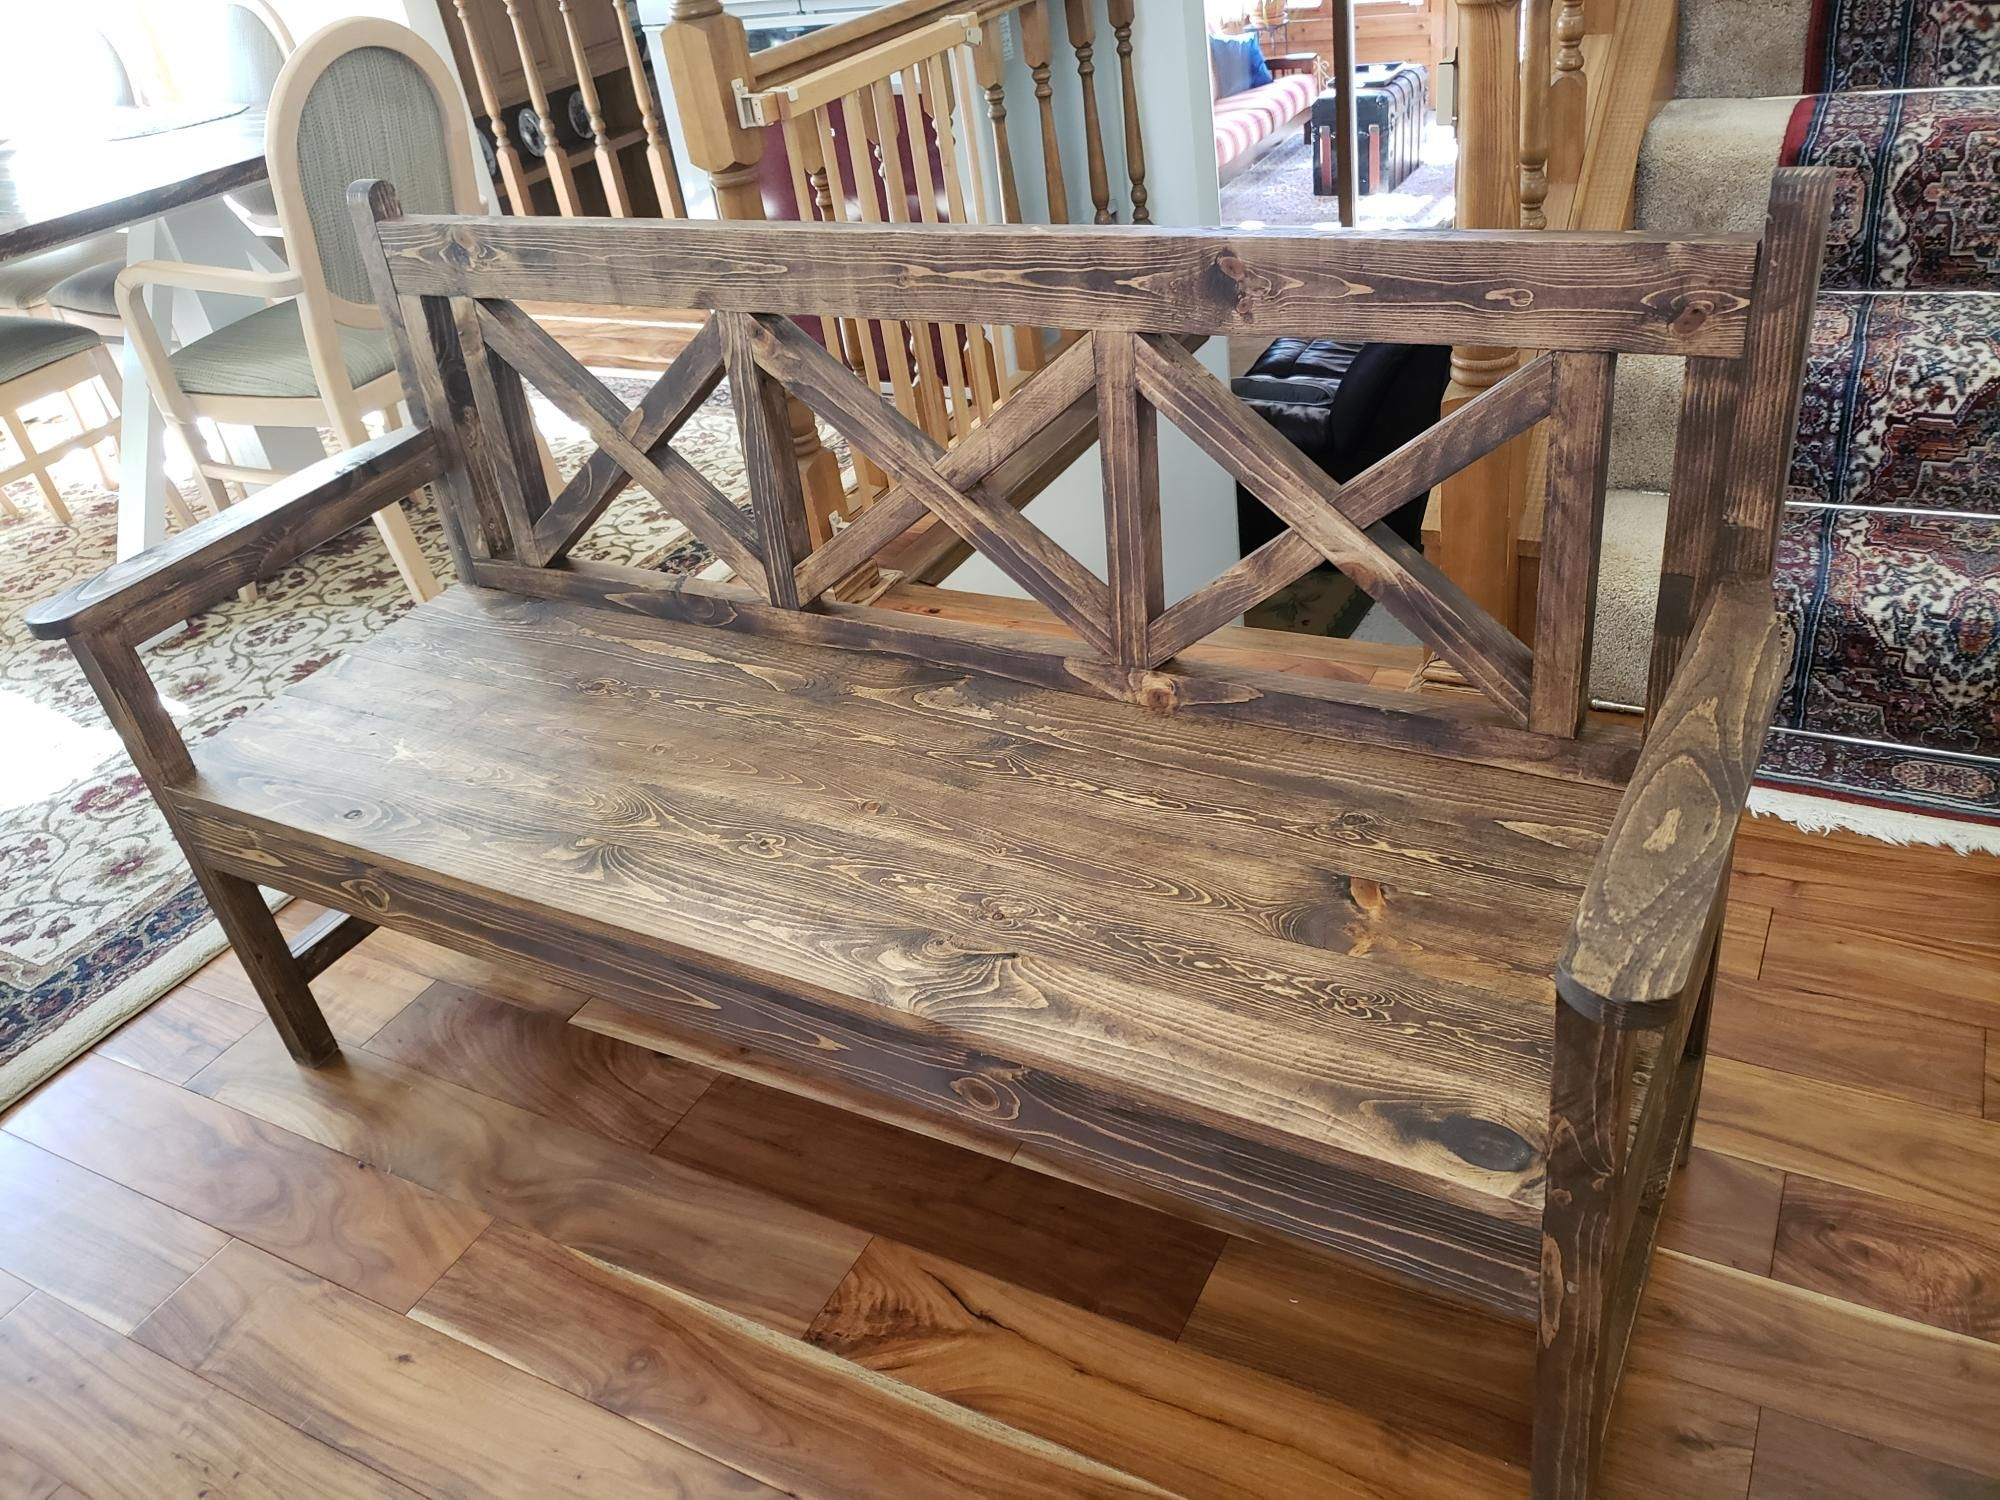 Farmhouse Dining Bench With Back Support 3 Seats Version Ana White Dining Bench With Back Farmhouse Dining Benches Farmhouse Table With Bench